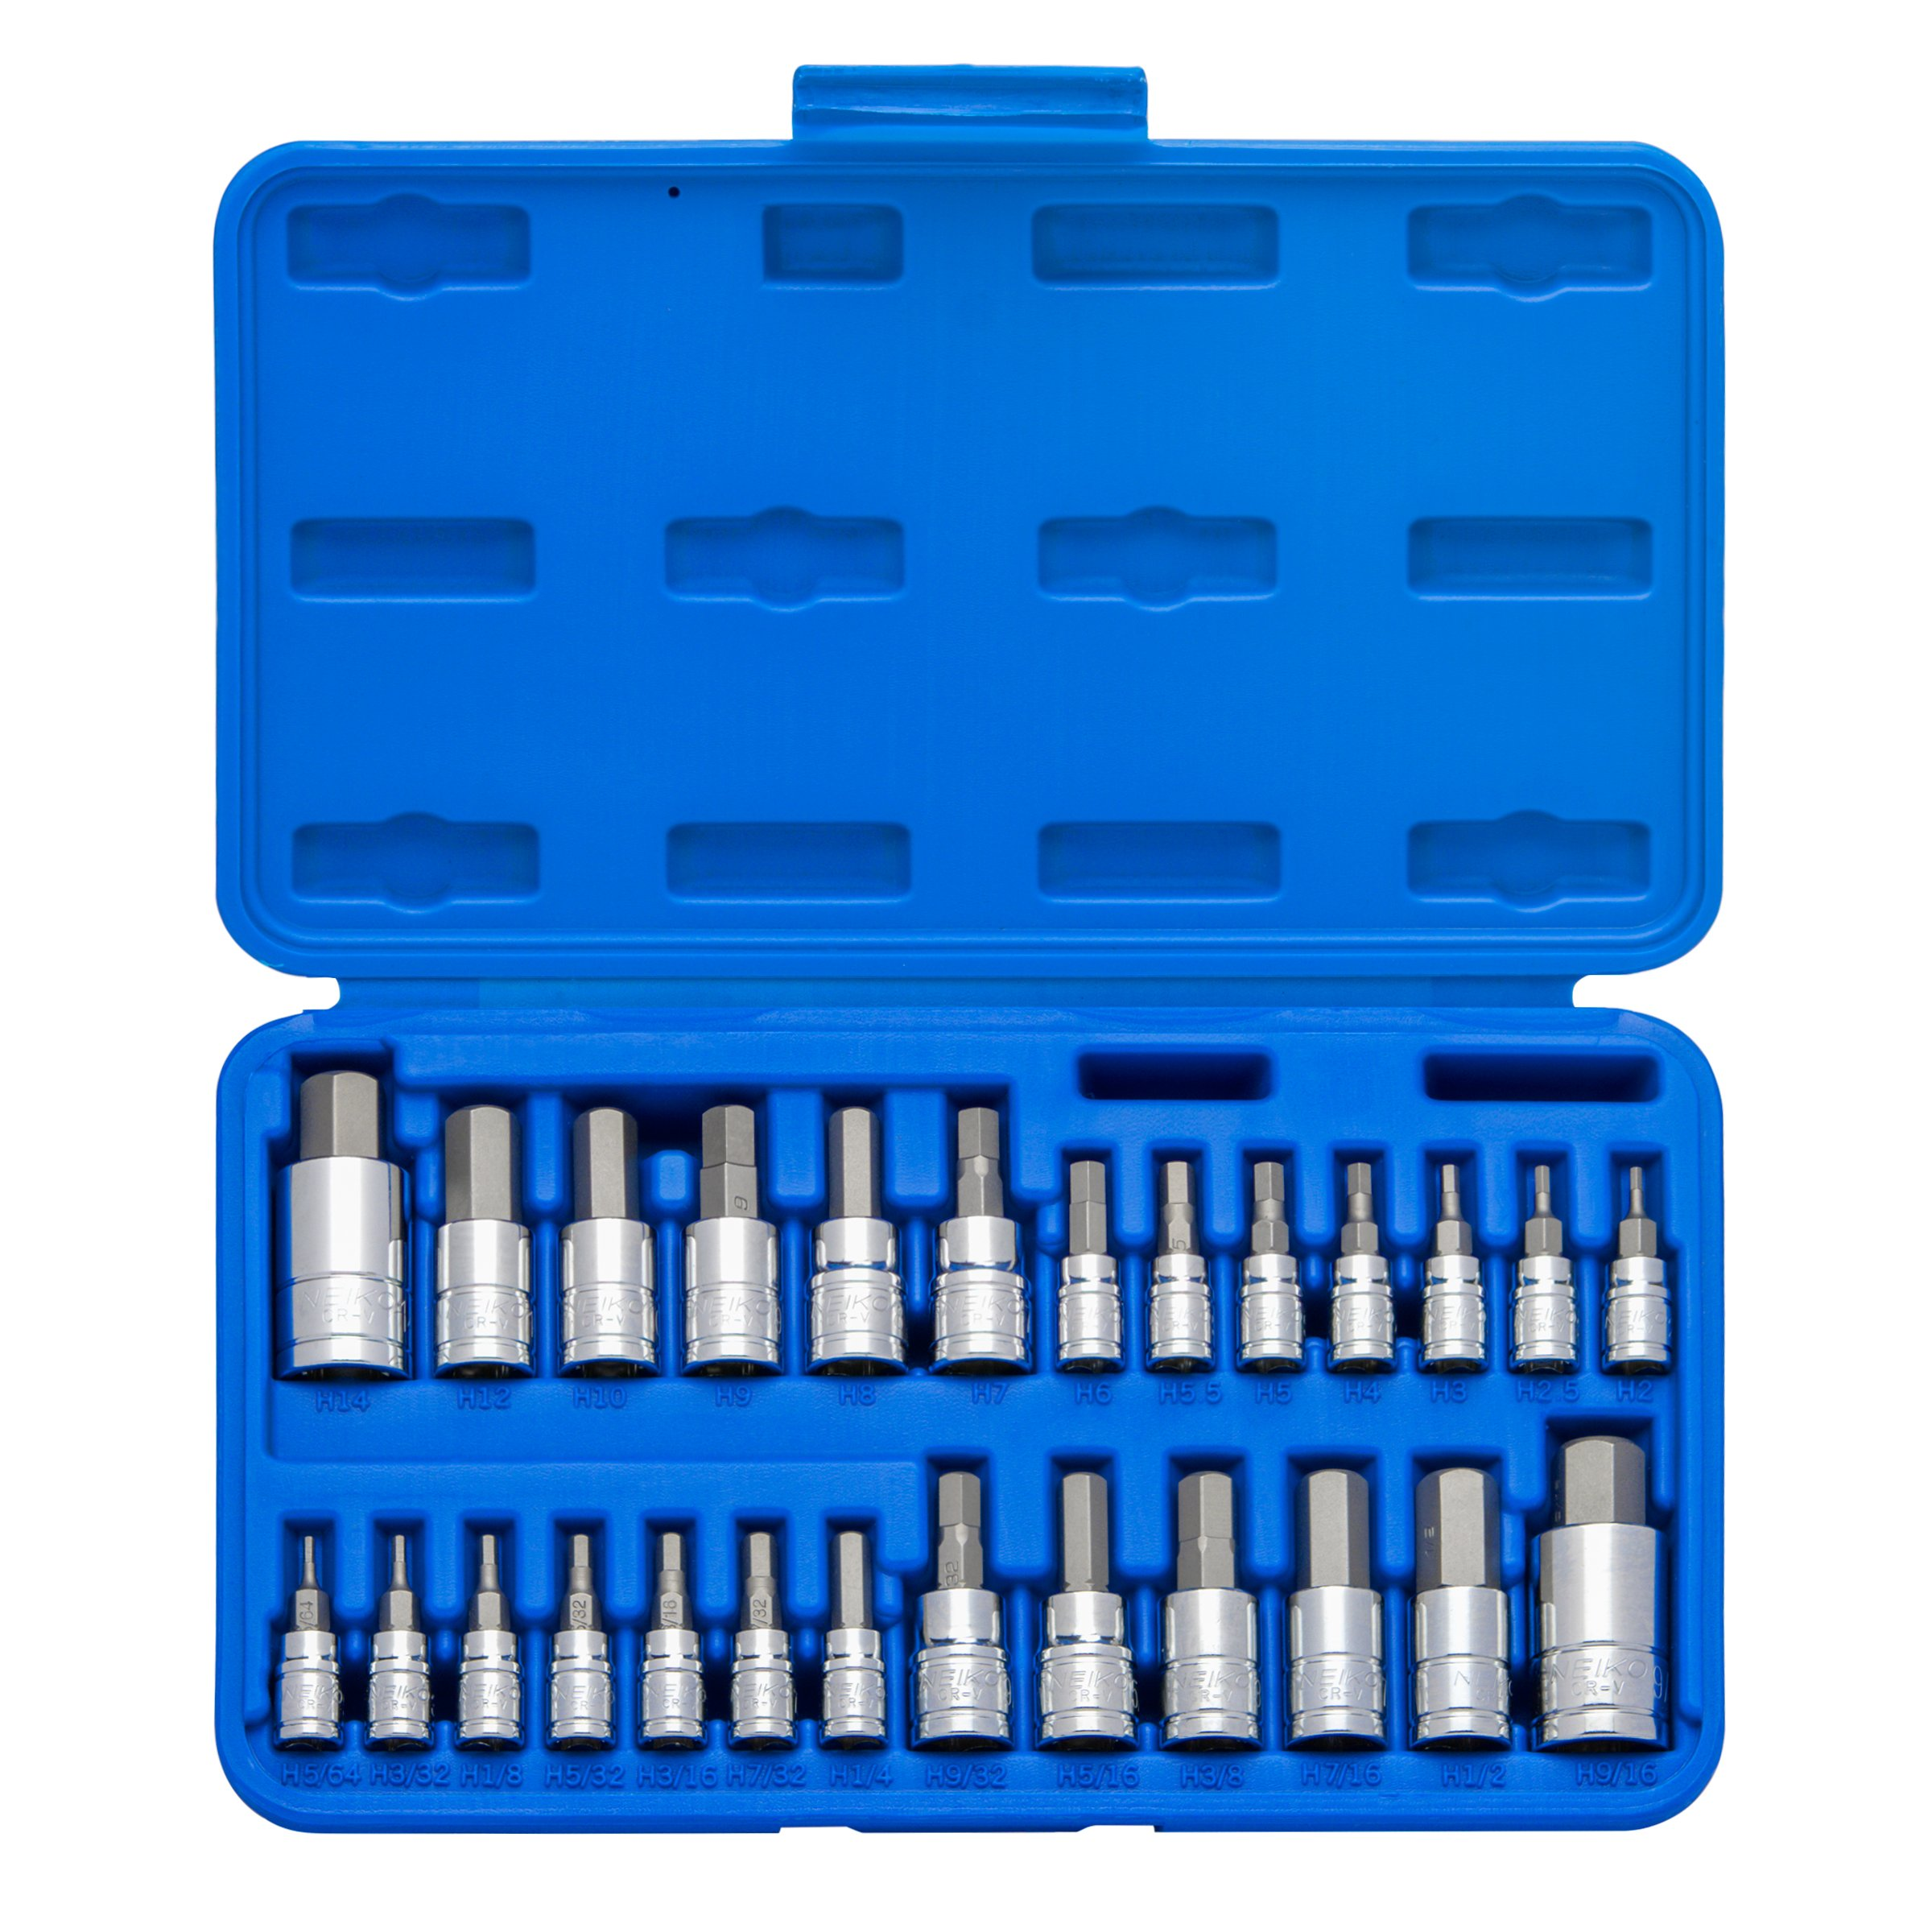 Neiko 01144A Tamper-Proof Hex Bit Socket Set, 26 Pieces | SAE 5/64-9/16'', Metric 2-14MM by Neiko